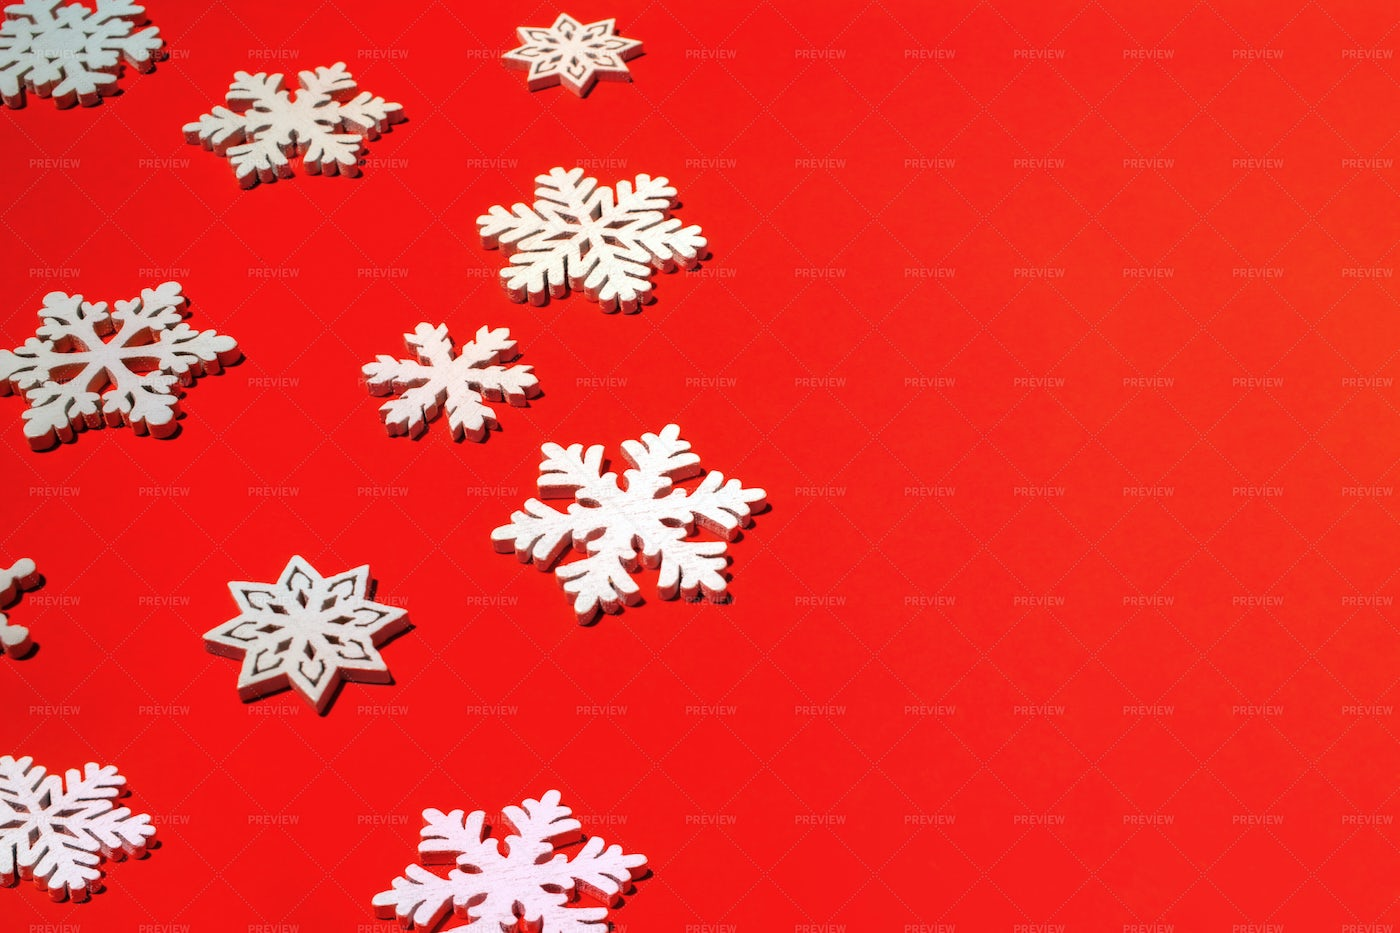 Festive Red Christmas Background.: Stock Photos